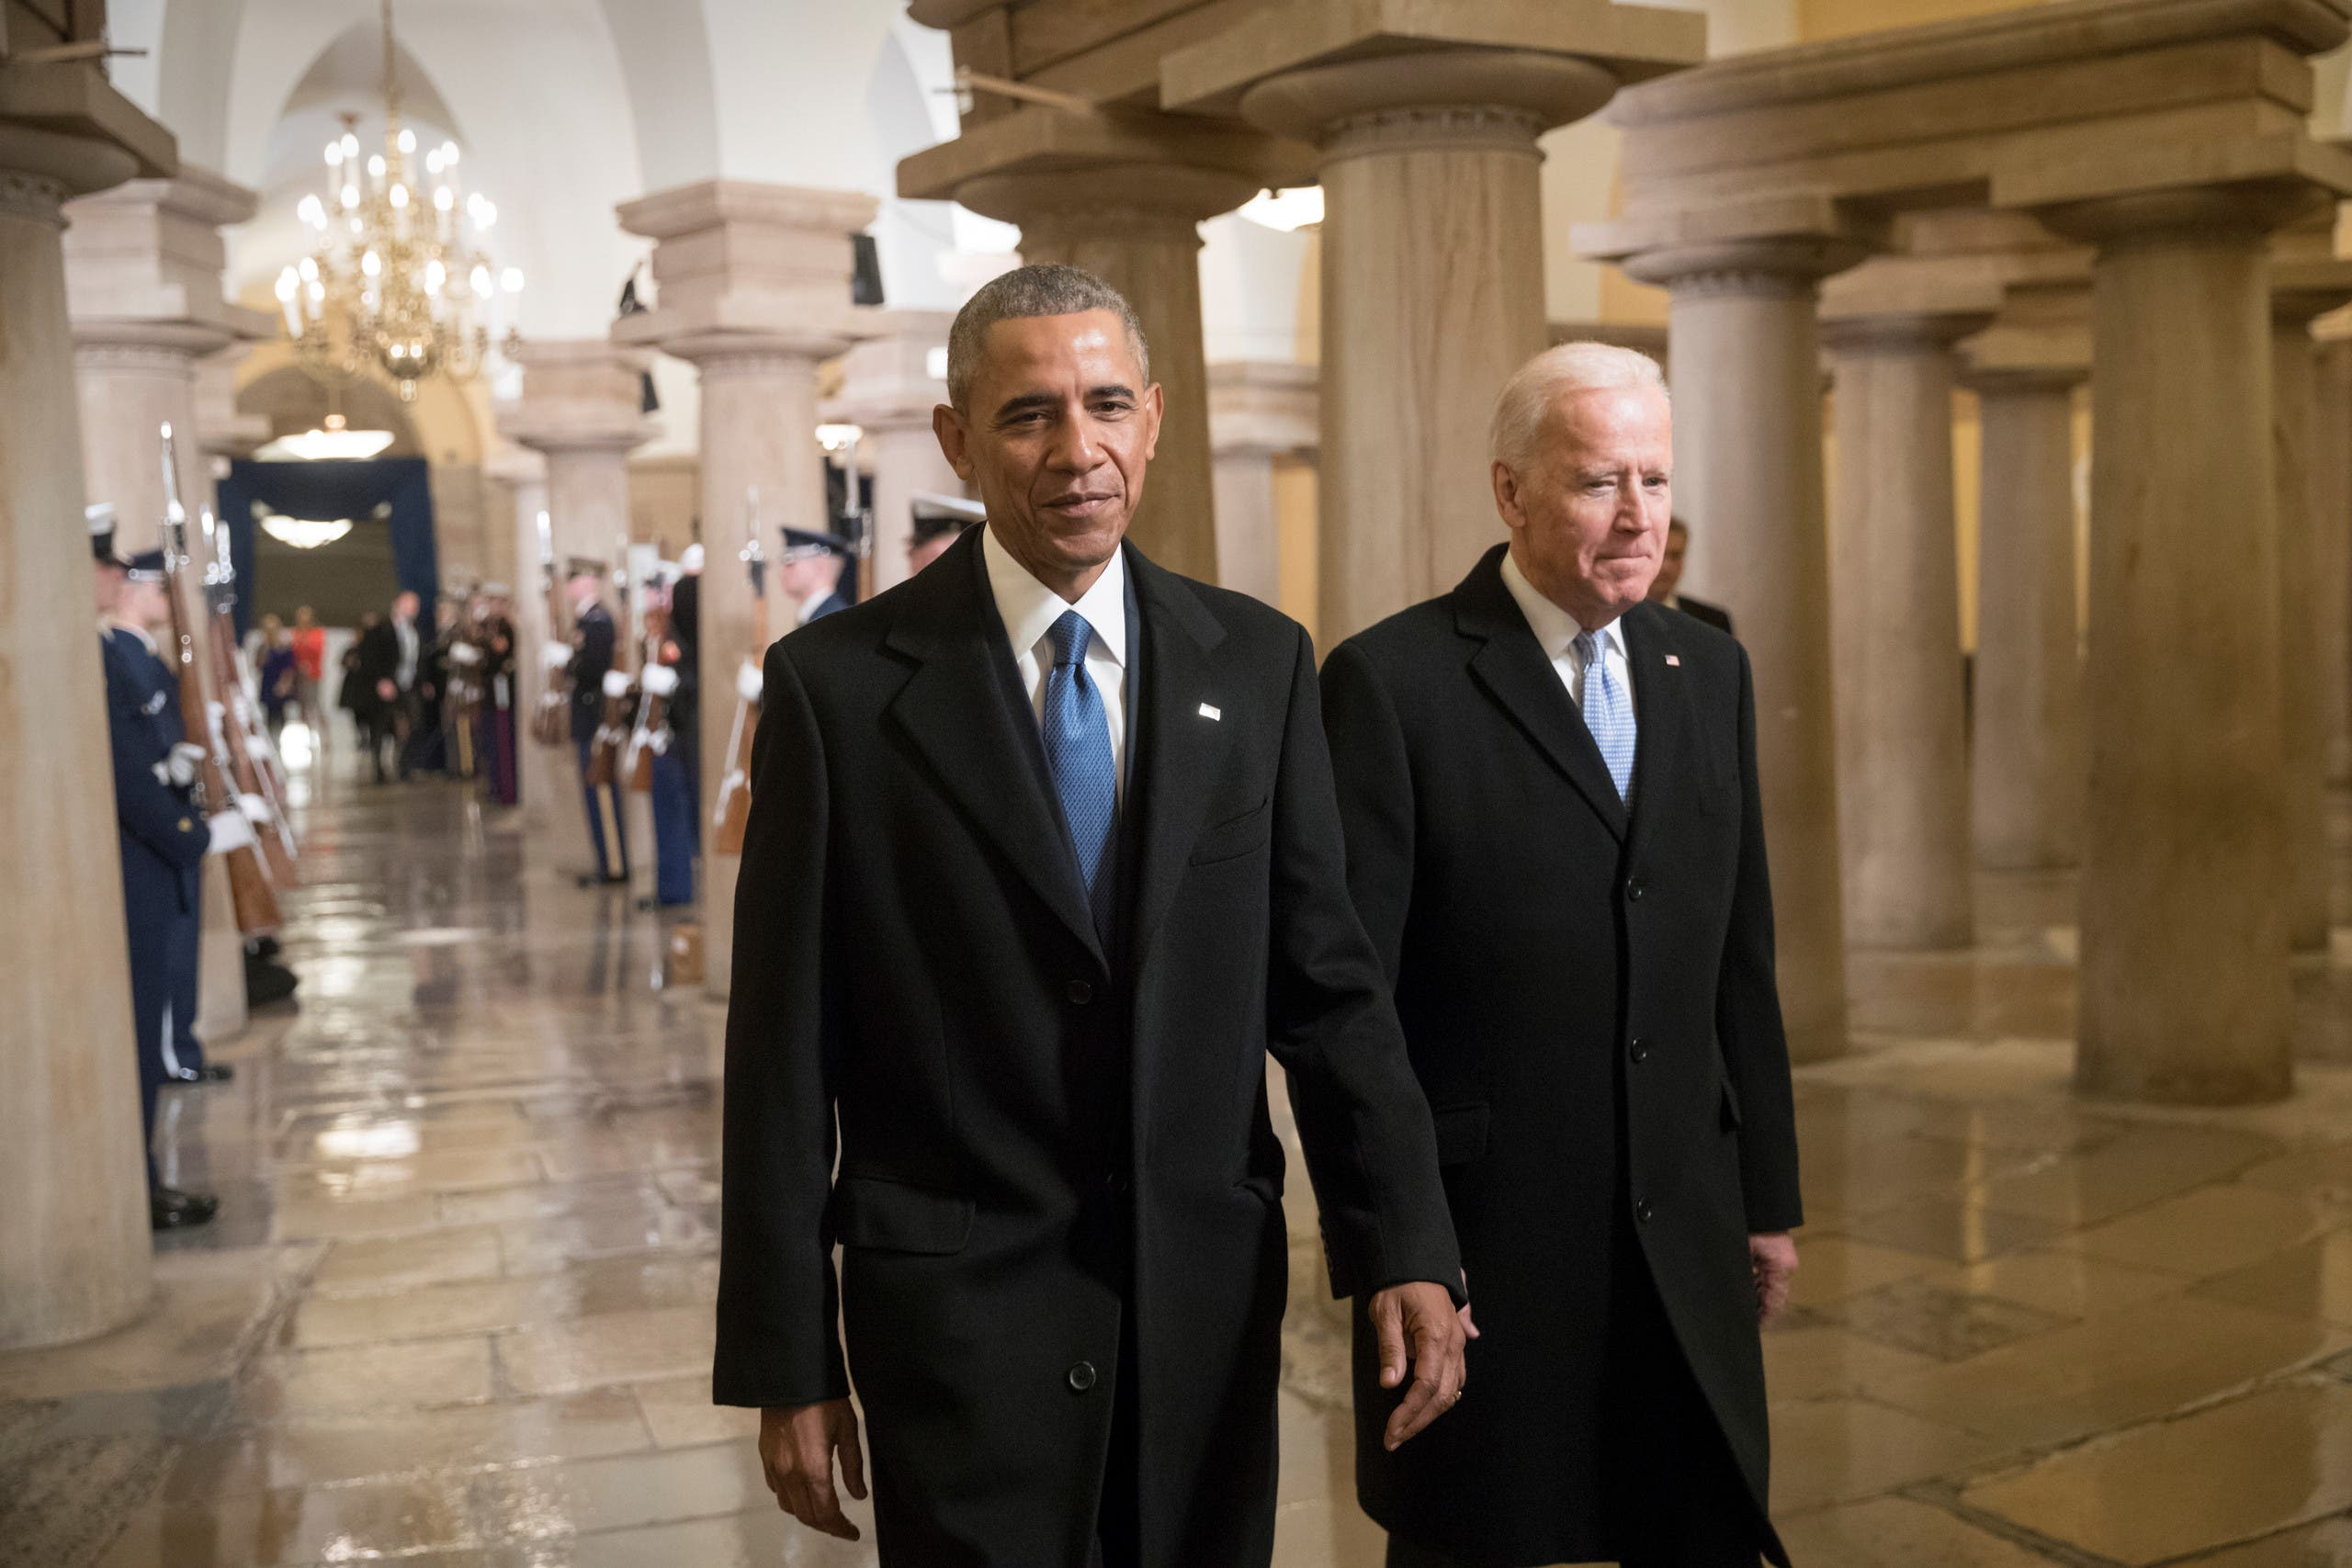 President Barack Obama and Vice President Joe Biden walk through the Crypt of the Capitol for Donald Trump's inauguration ceremony, in Washington, Friday, Jan. 20, 2017. (Reuters)